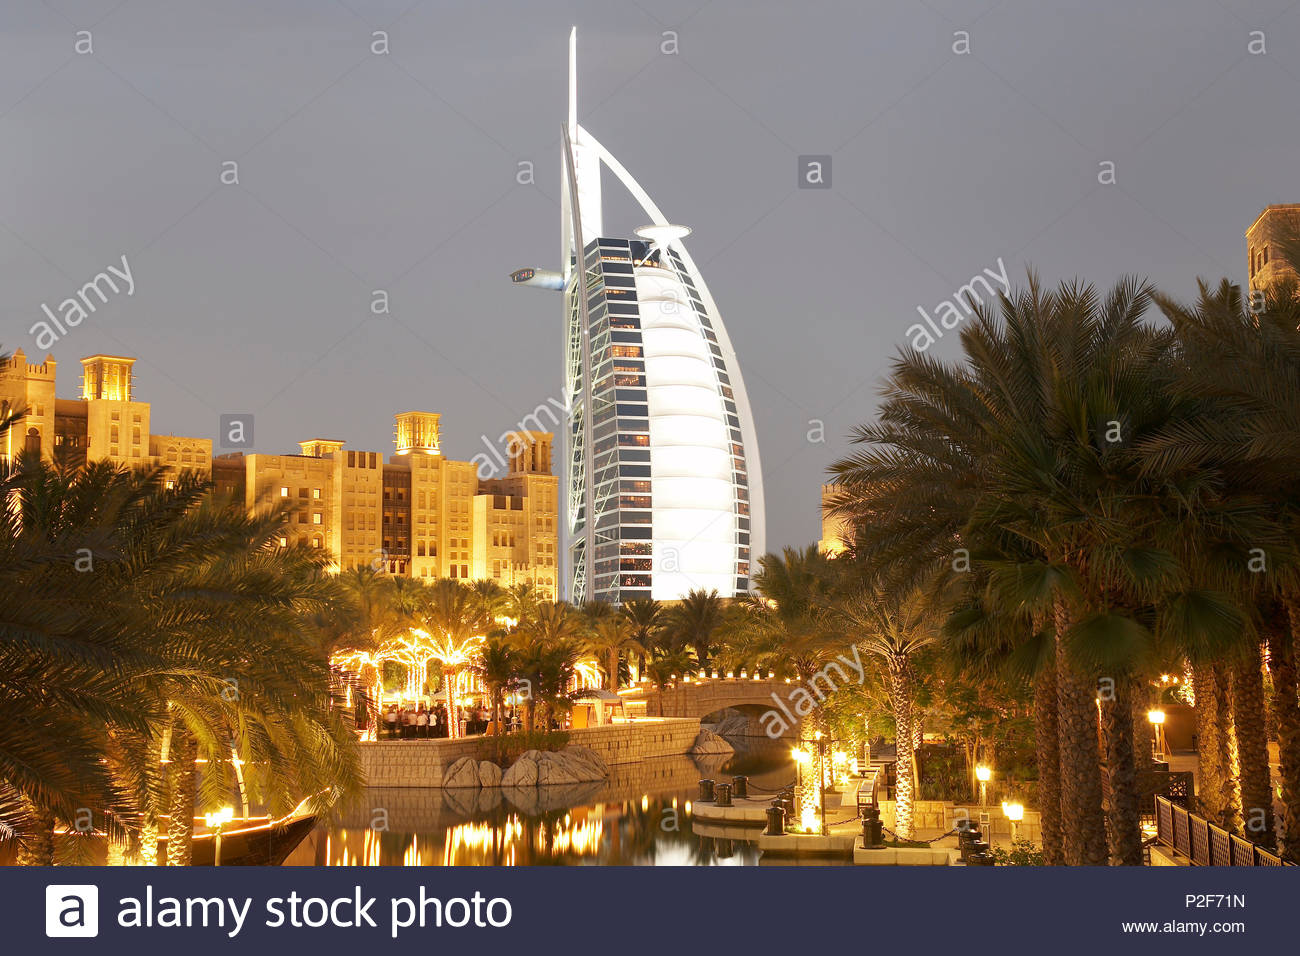 Madinat Jumeirah, luxury resort at Jumeirah beach, like a town with Arabian flair with markets, hotel, resort, luxury, Dubai, Un - Stock Image